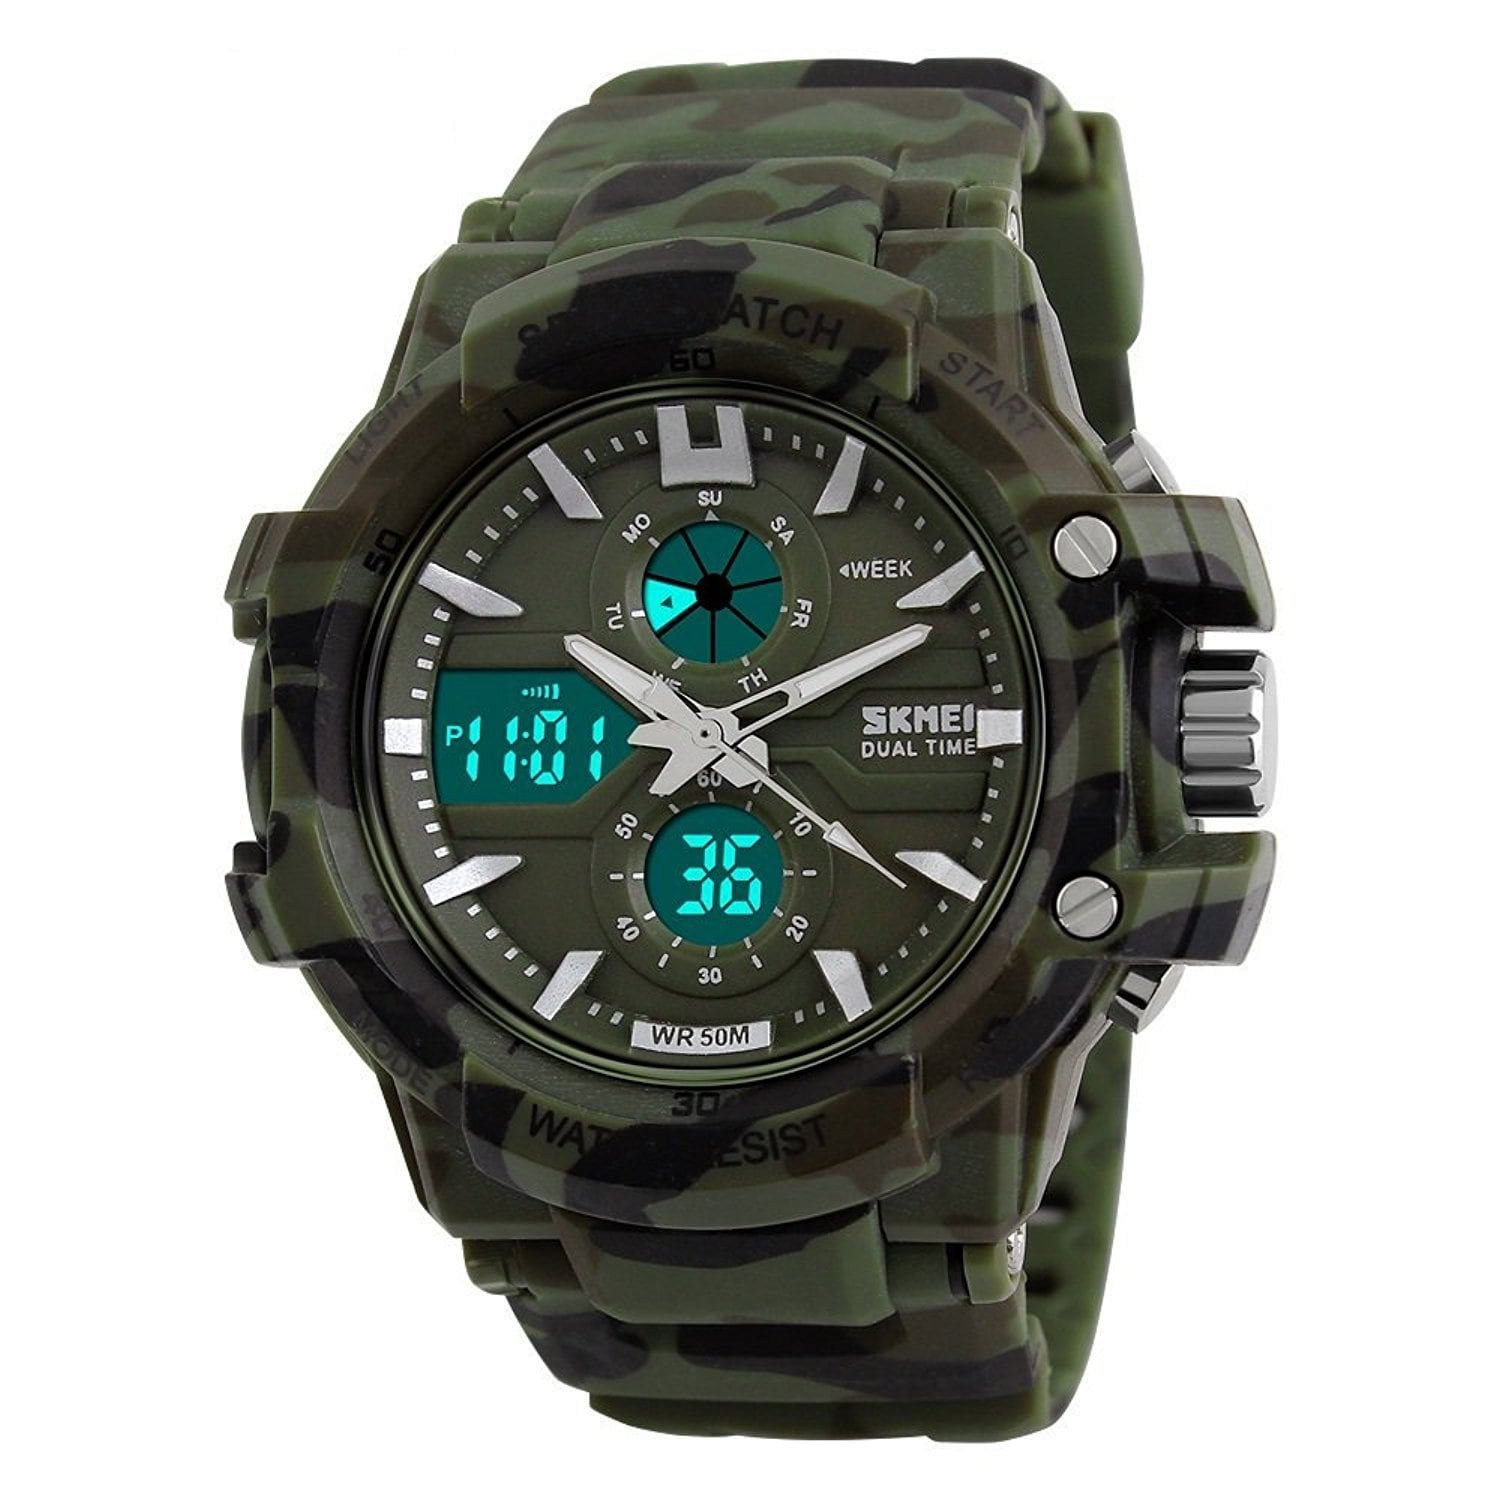 SKMEI Military Green Sporty Watch For Men's Watch - For Men